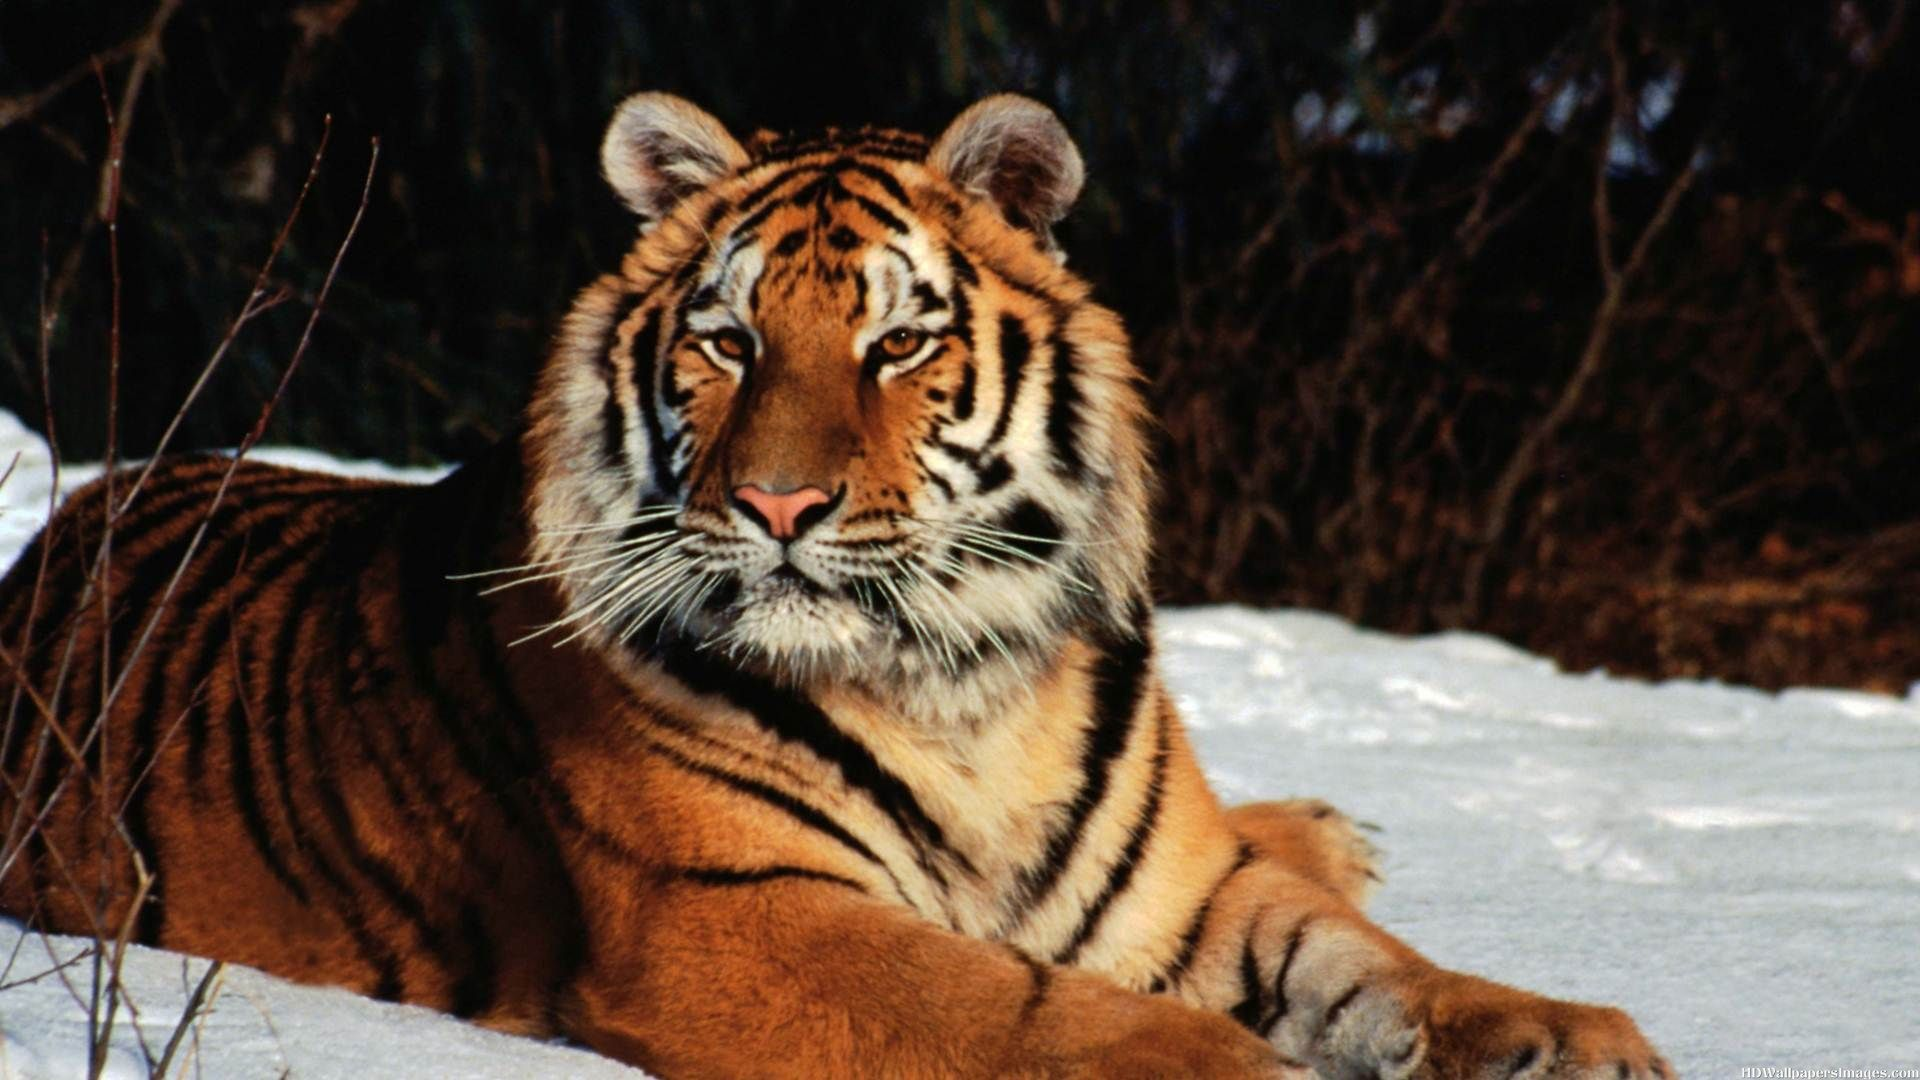 Images of a Tiger on Snow 216.38 Kb